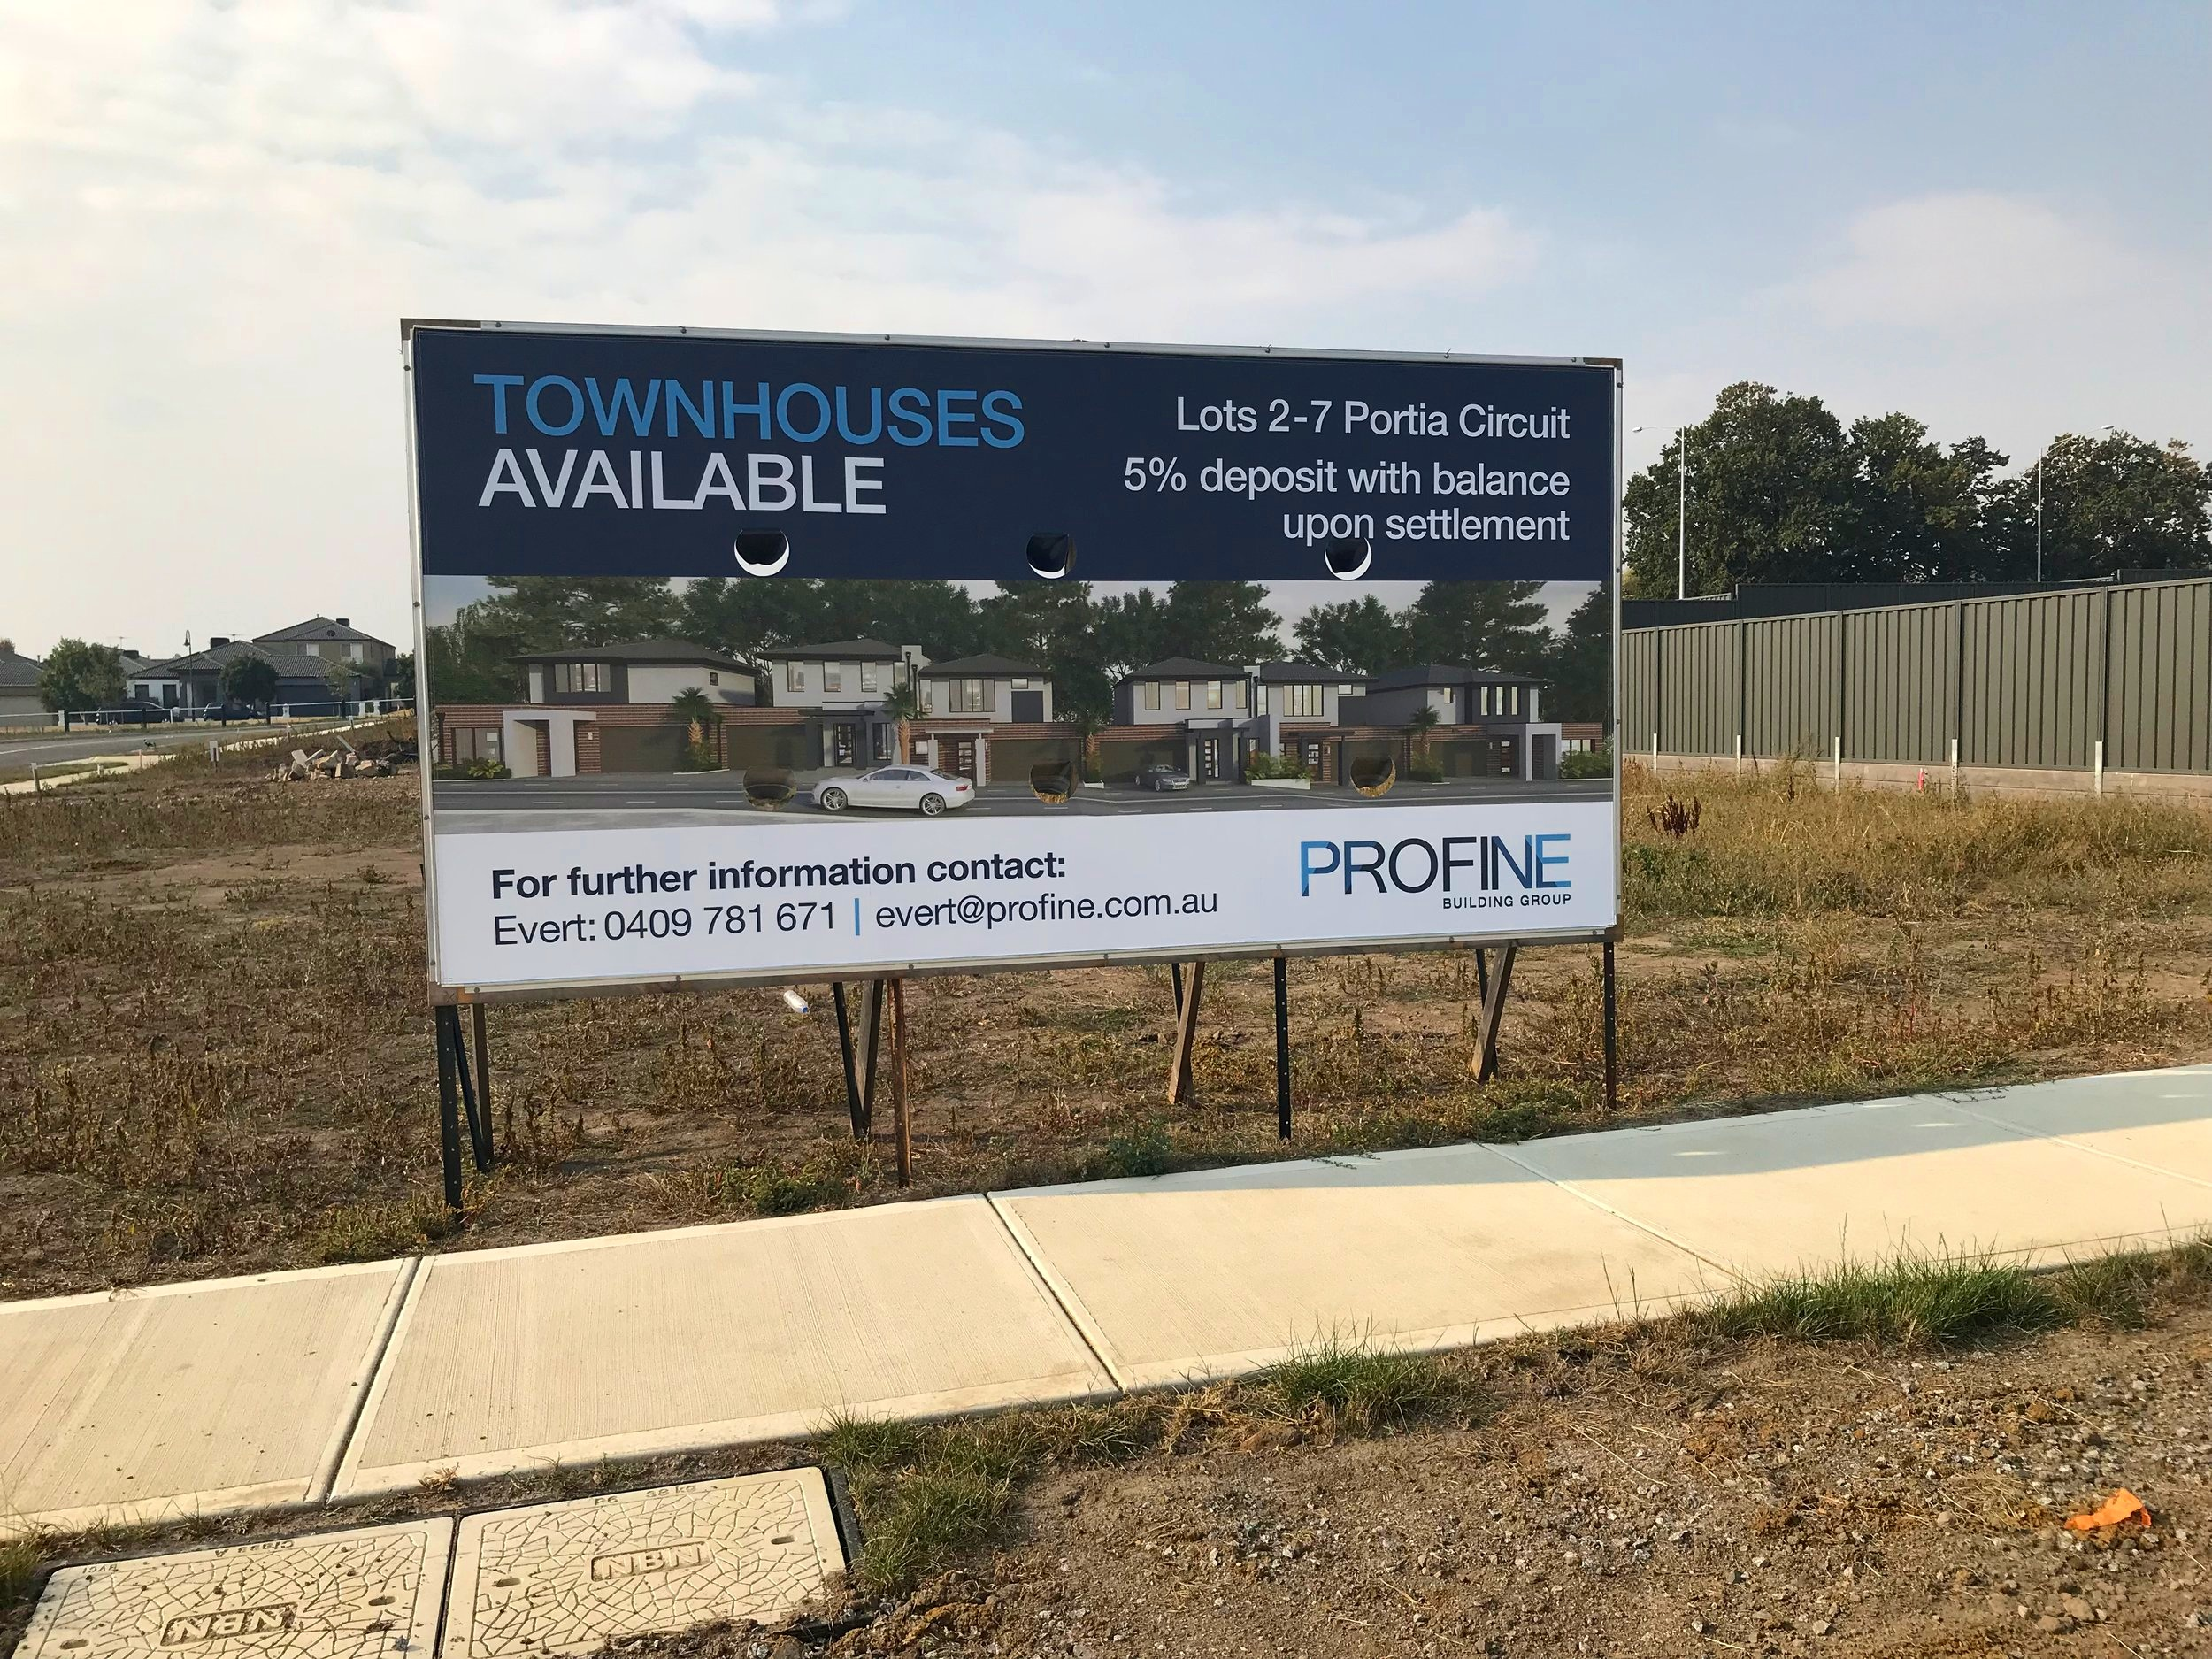 TOWNHOUSES AVAILABLE - 10/03/2019Starting from $549,950. Located in Melbournes most up and coming area. Contact Evert on 0409 781 671 for more information.